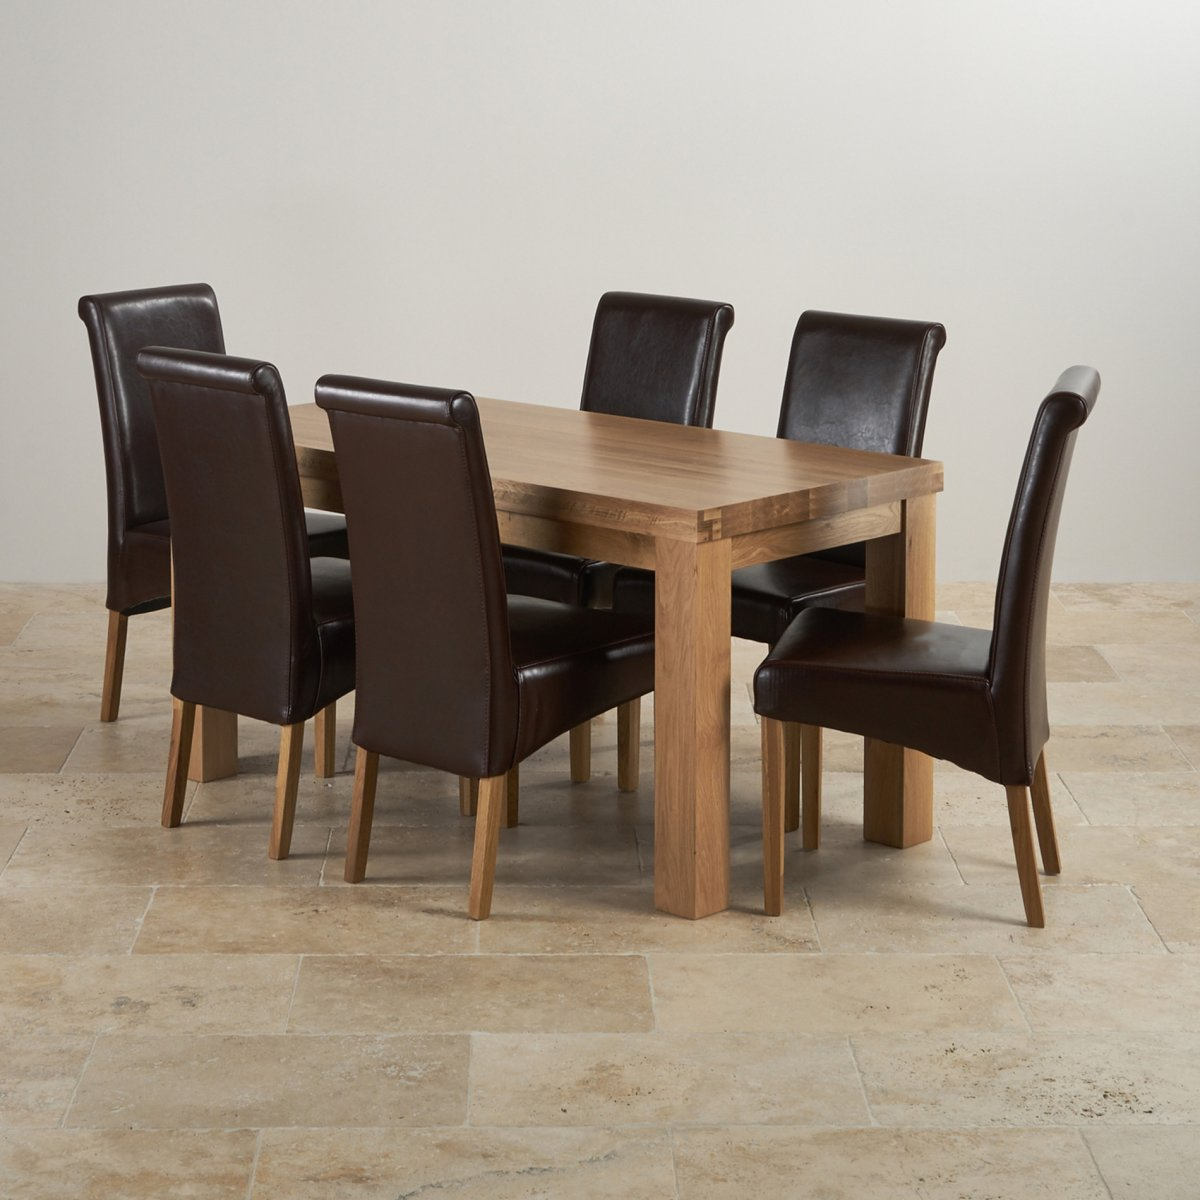 Chairs Dining Contemporary Dining Set In Oak Table 43 6 Brown Leather Chairs